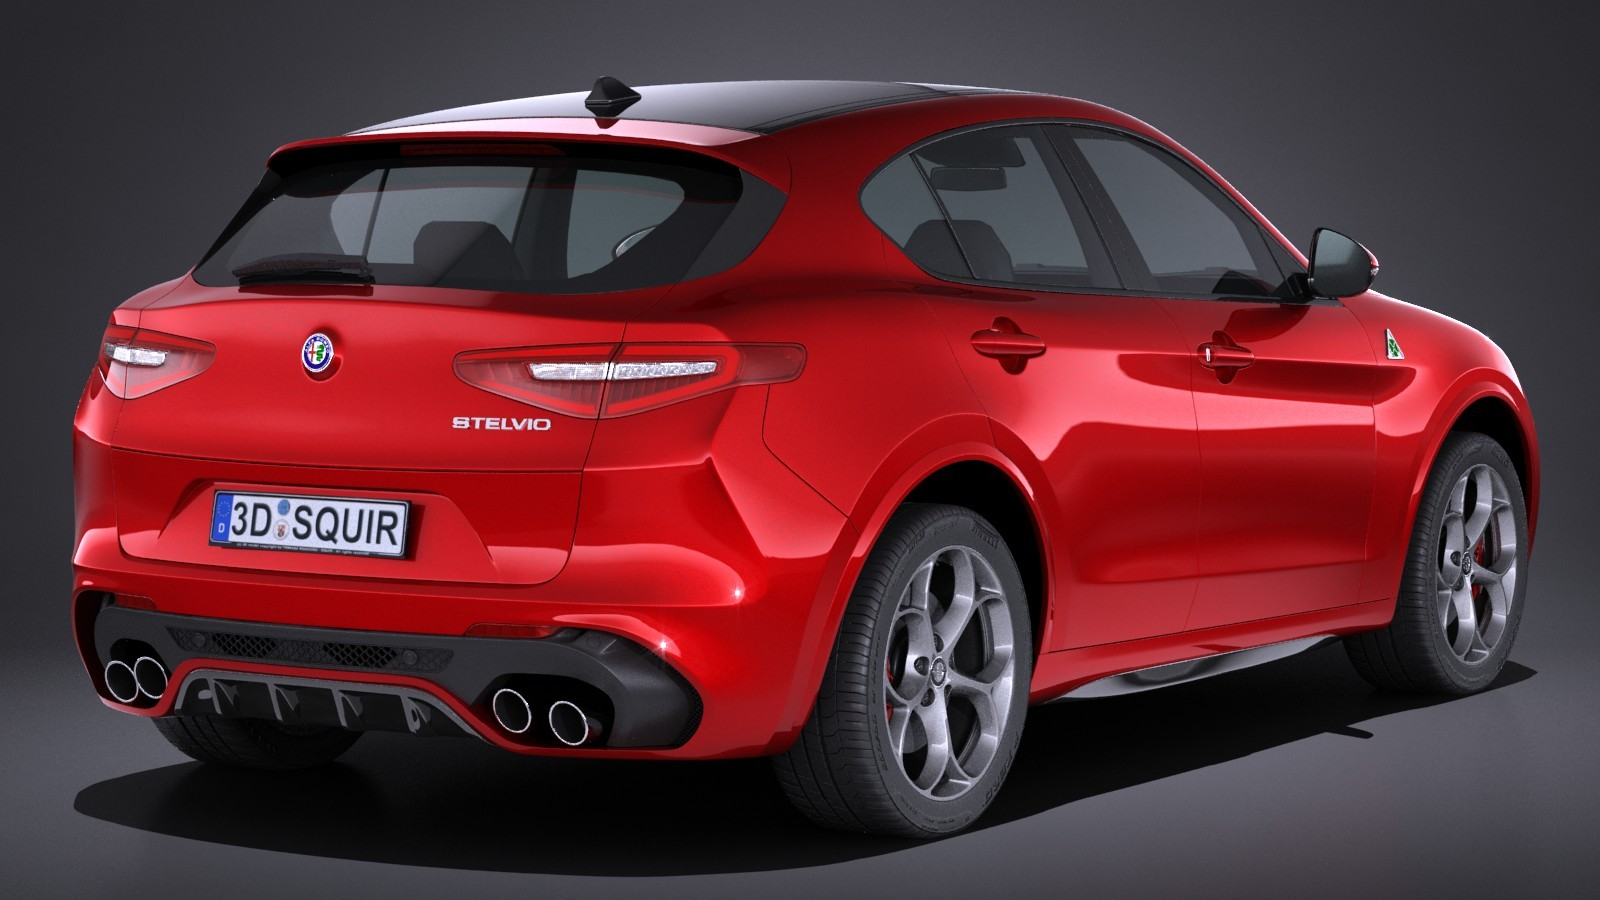 alfa romeo stelvio quadrifoglio batte porsche cayenne turbo s suv pi veloce zz7 curiosit. Black Bedroom Furniture Sets. Home Design Ideas